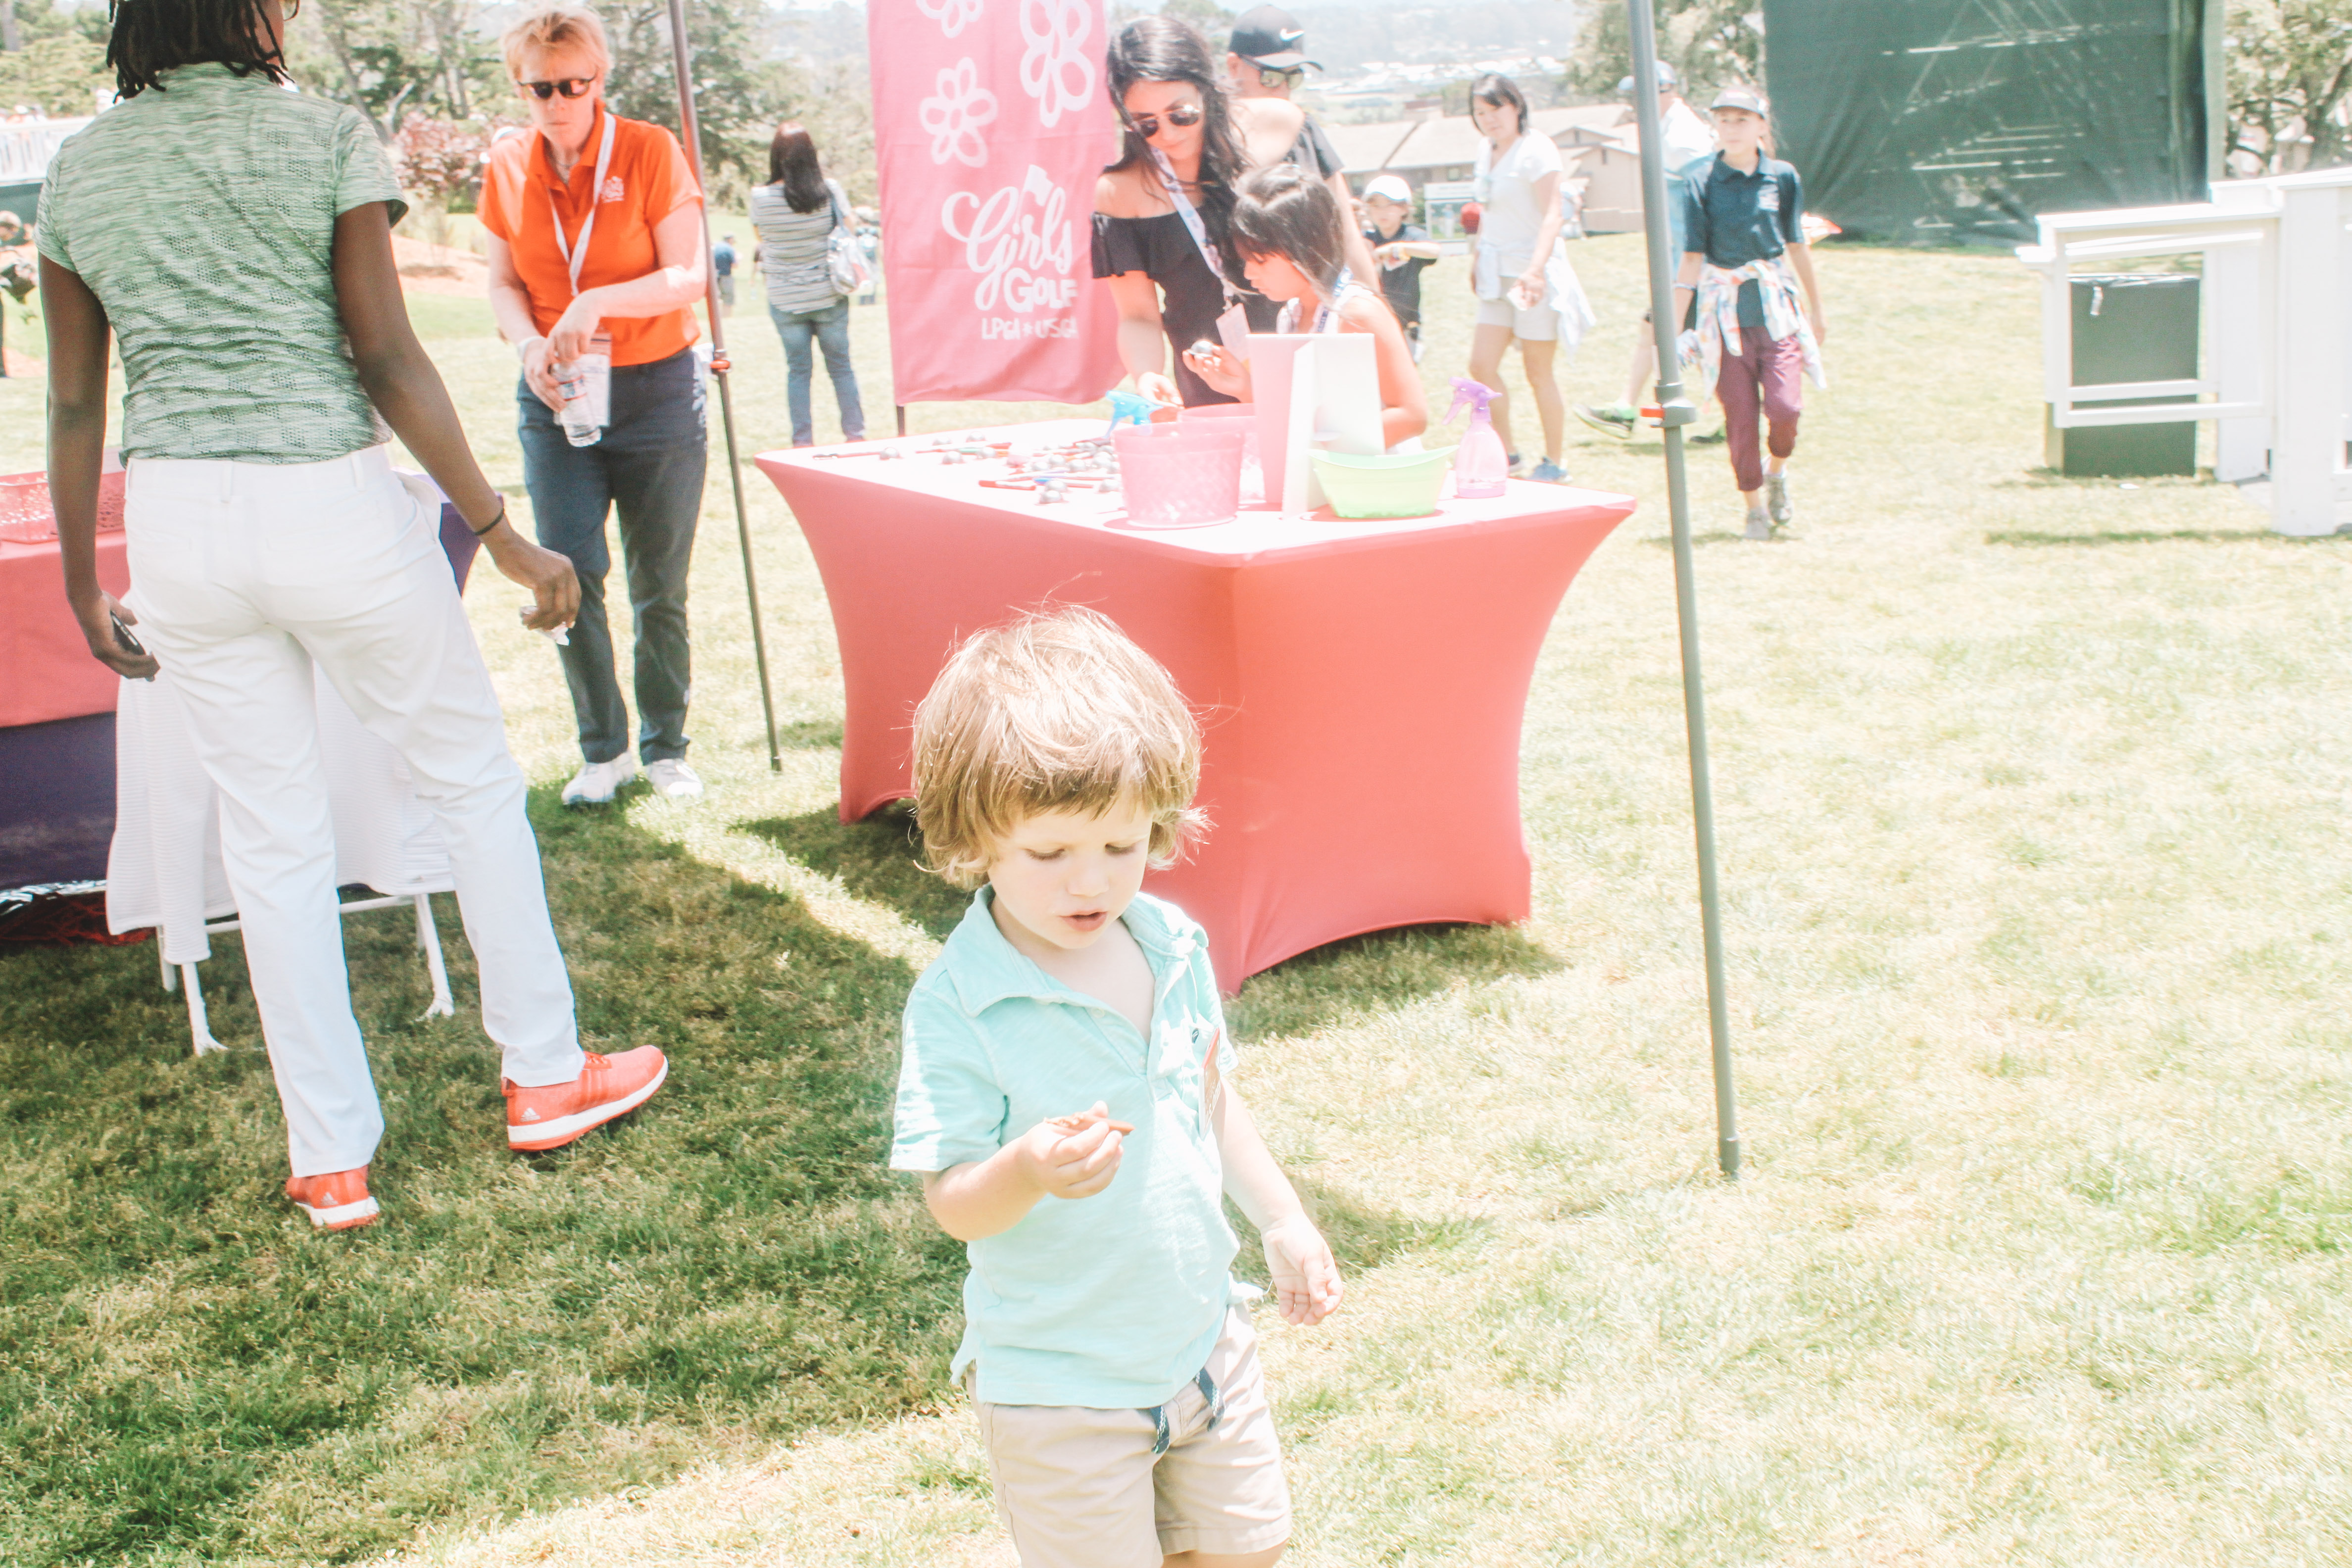 Family-Friendly Junior Experience at the USGA's 119th U.S. Open in Pebble Beach 87